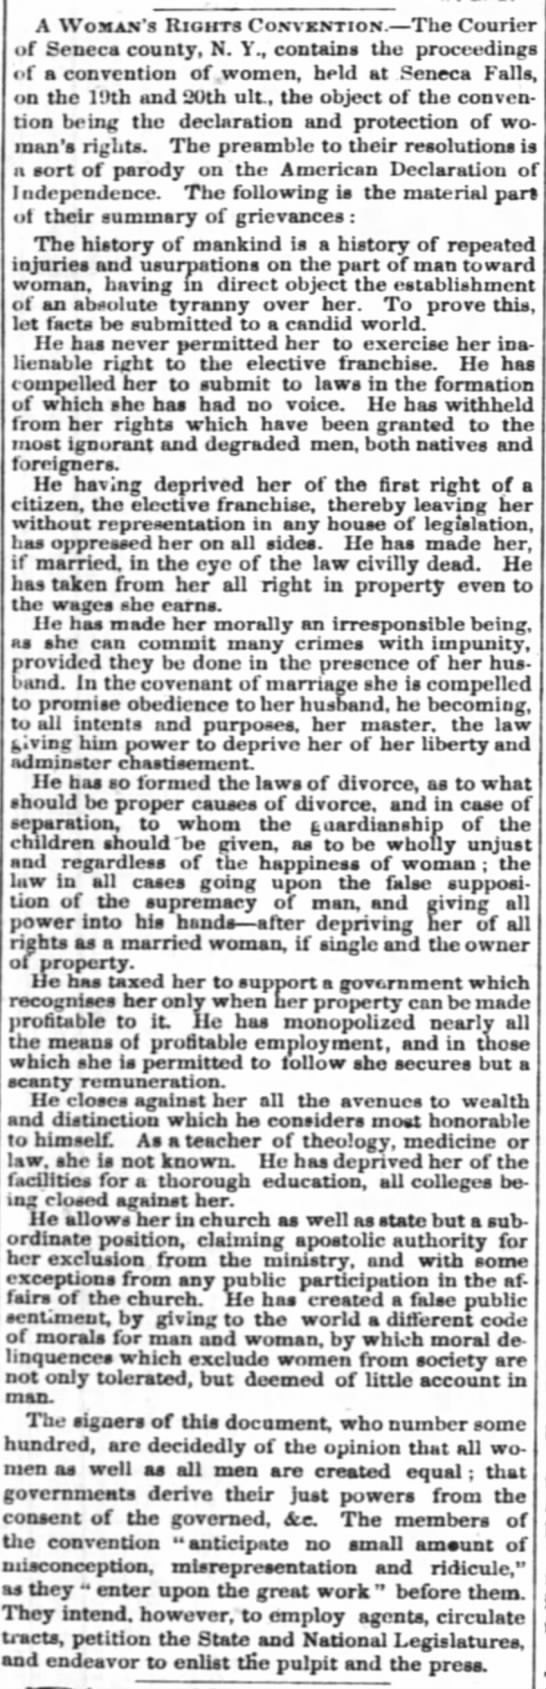 """Inalienable Rights to the Elective Franchise""..!!! Woman's Rights Convention at Seneca Falls, NY, 1848. - on Newspapers.com"